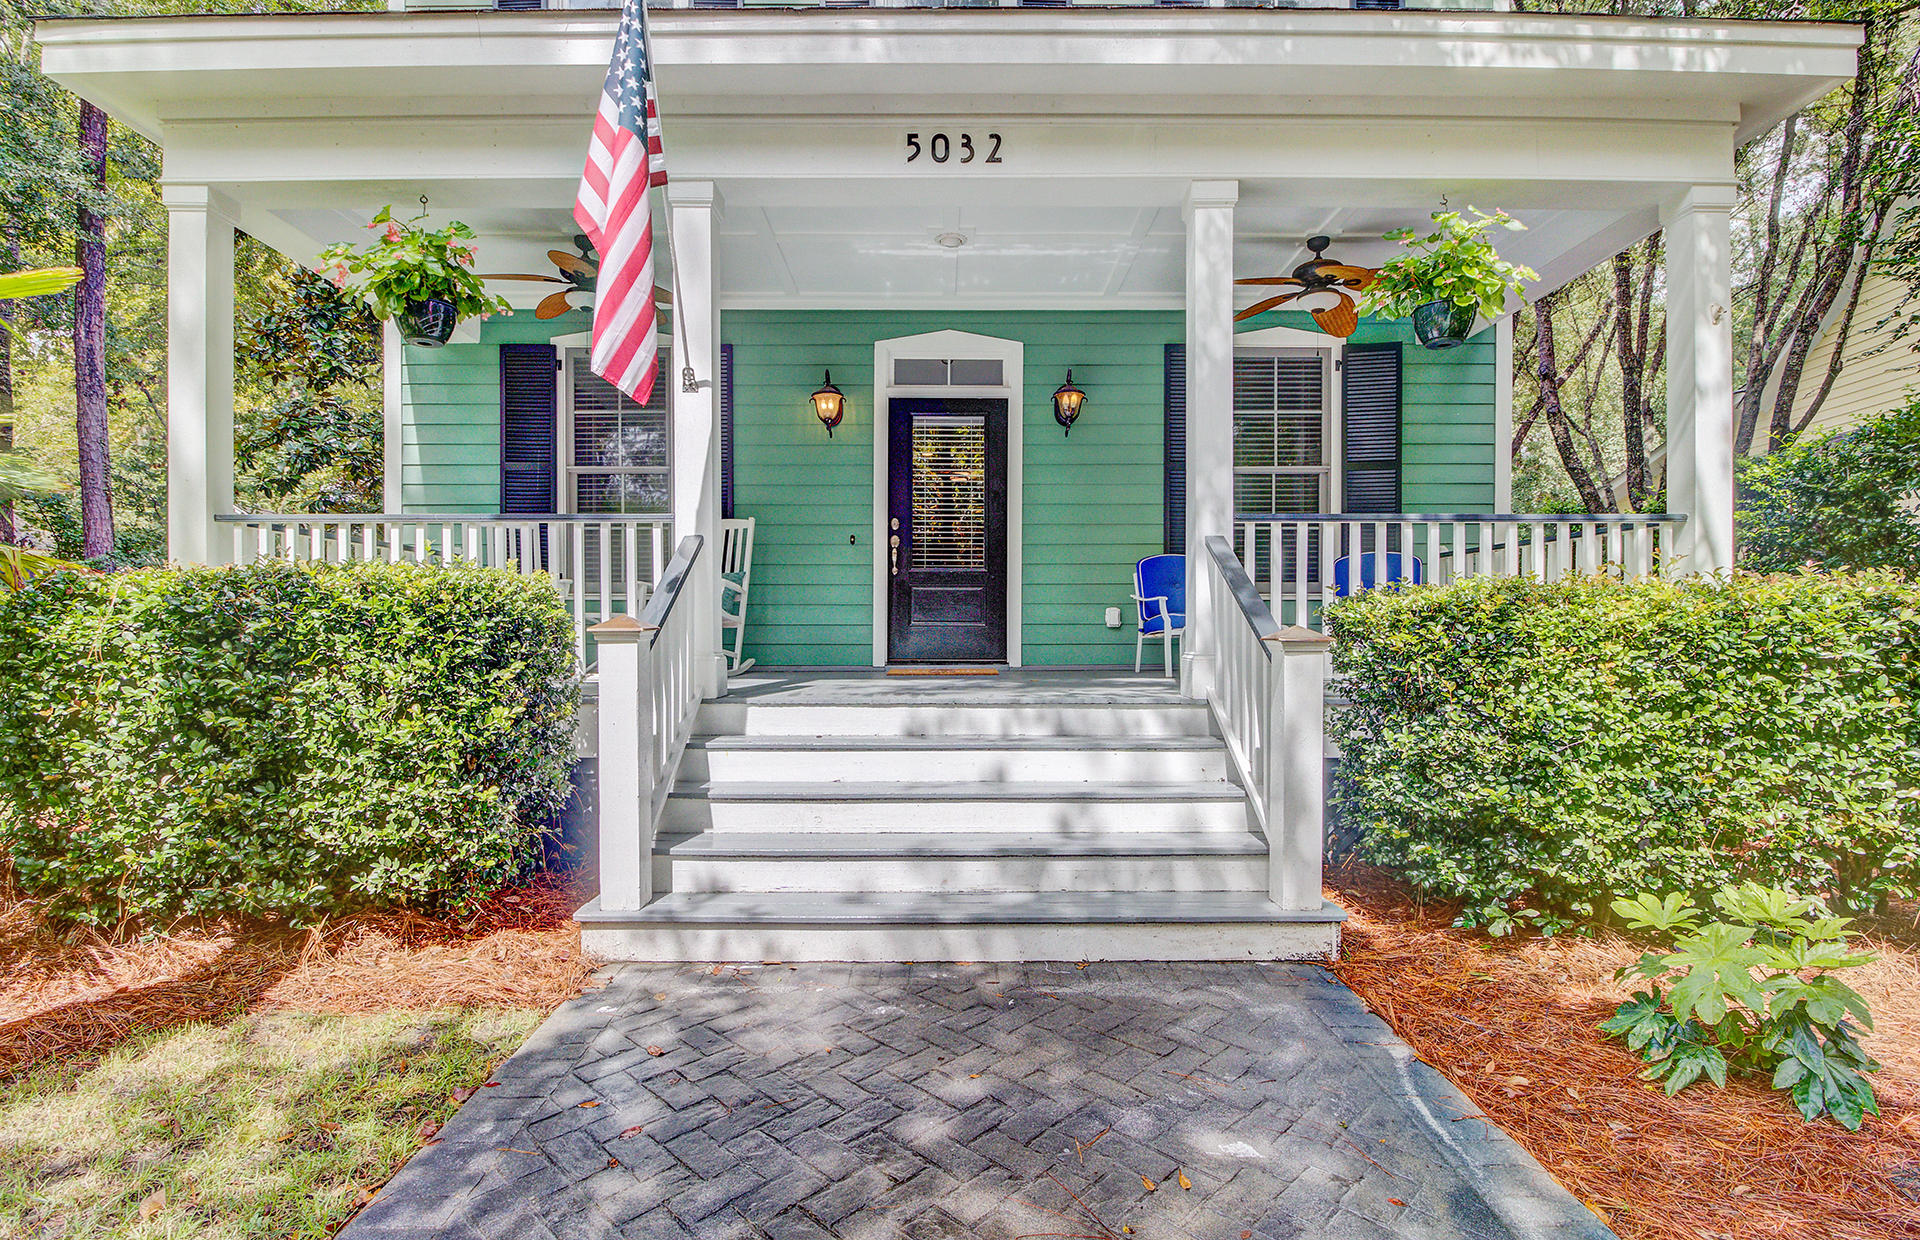 The Villages In St Johns Woods Homes For Sale - 5032 Coral Reef, Johns Island, SC - 37